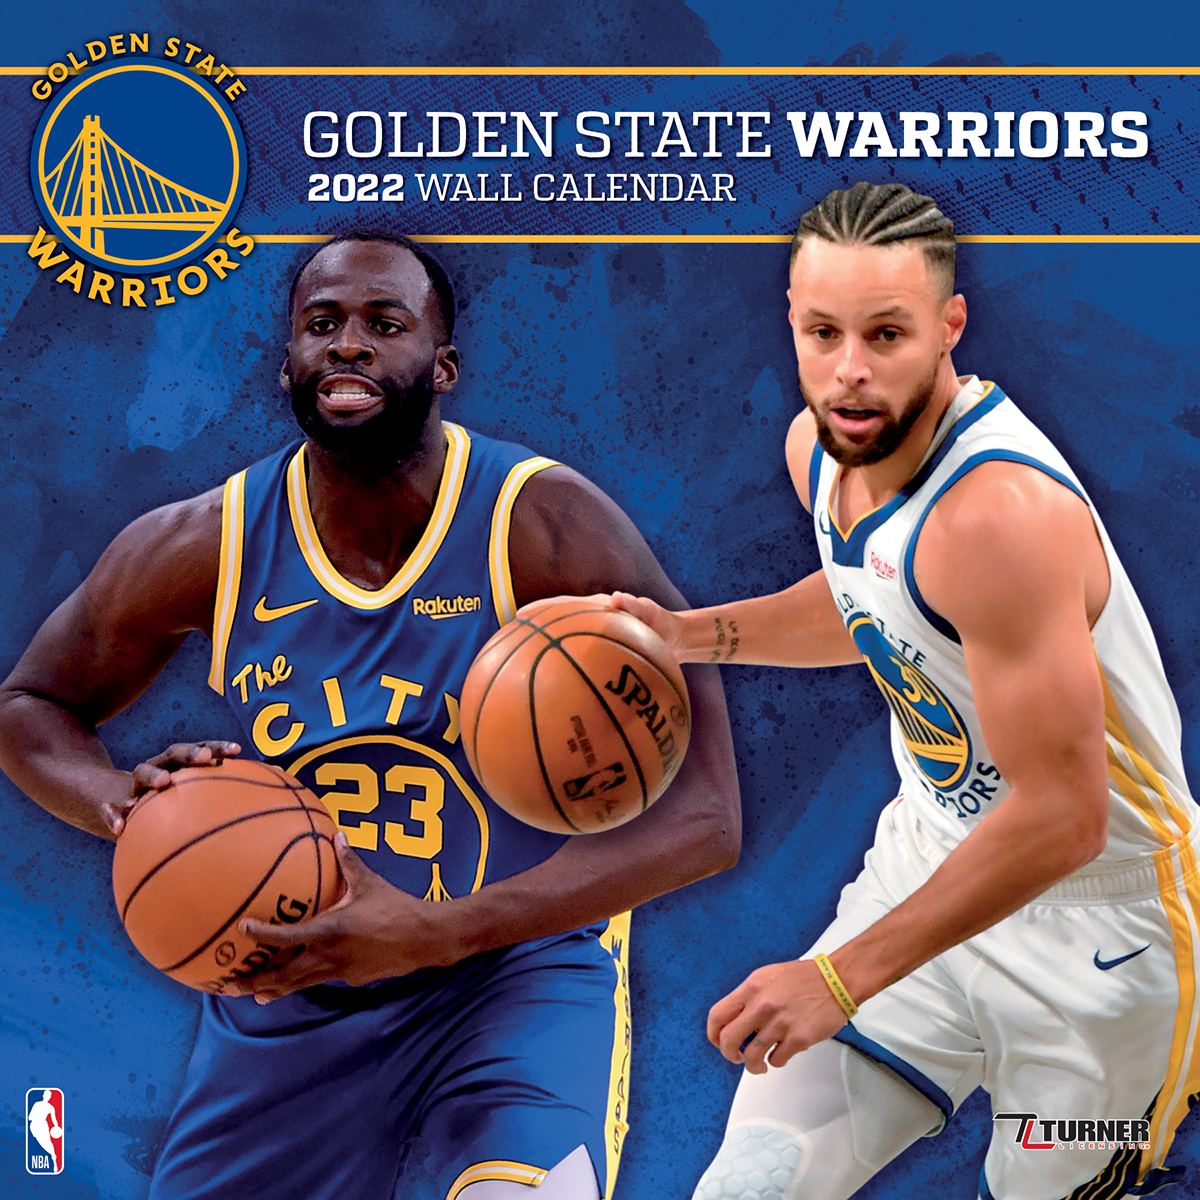 Golden State Warriors 2019 Mini Wall Calendar